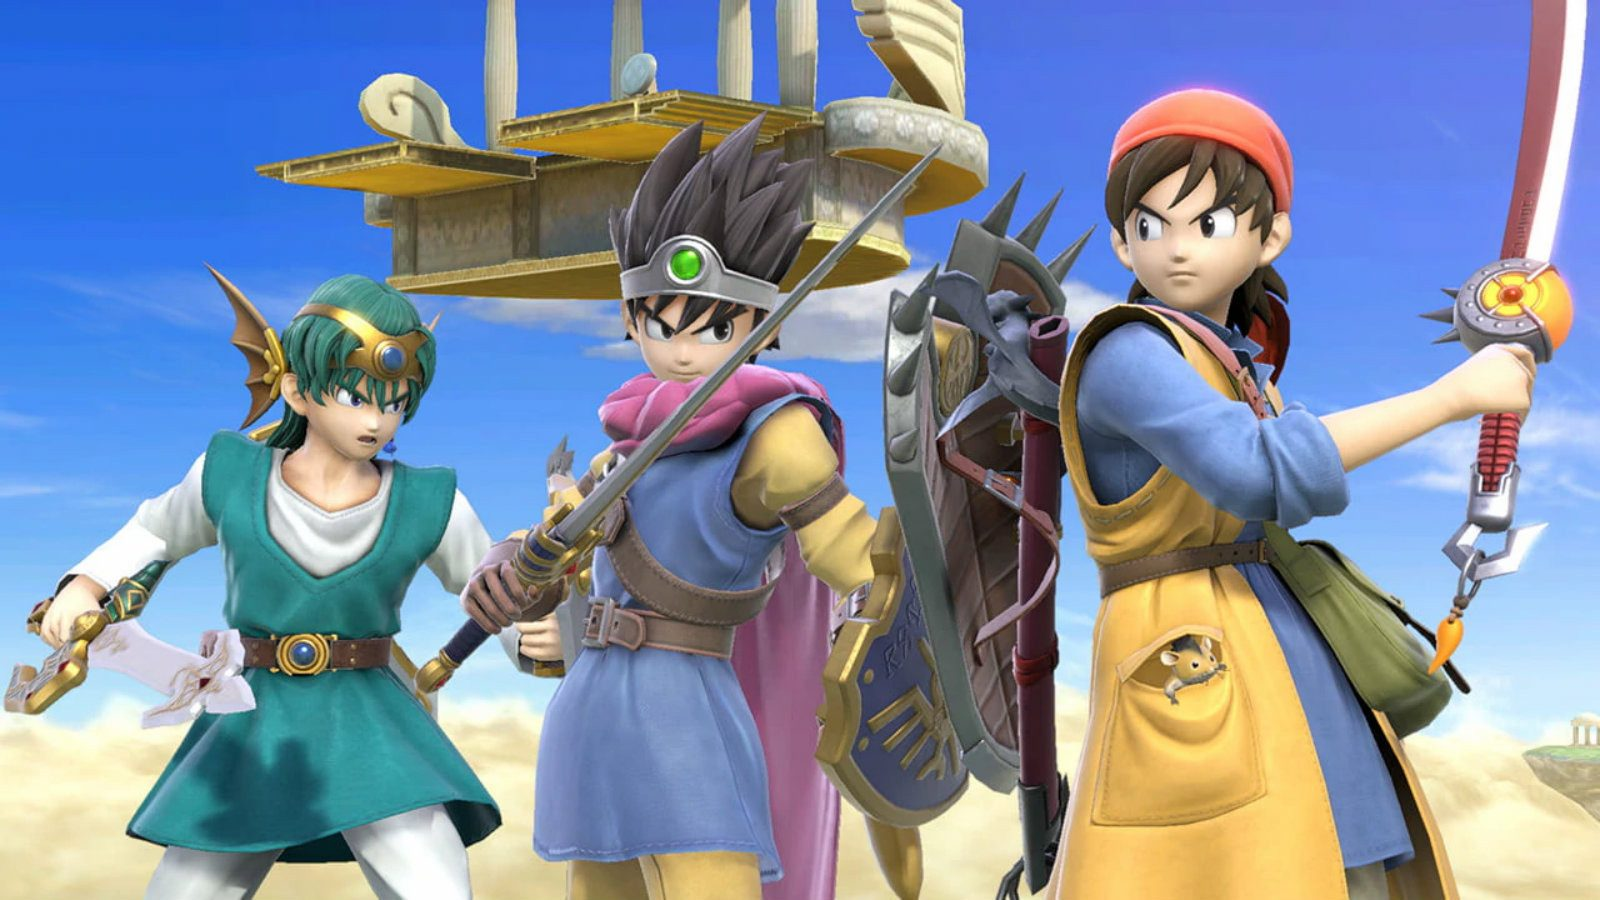 Dragon Quest heroes in Smash